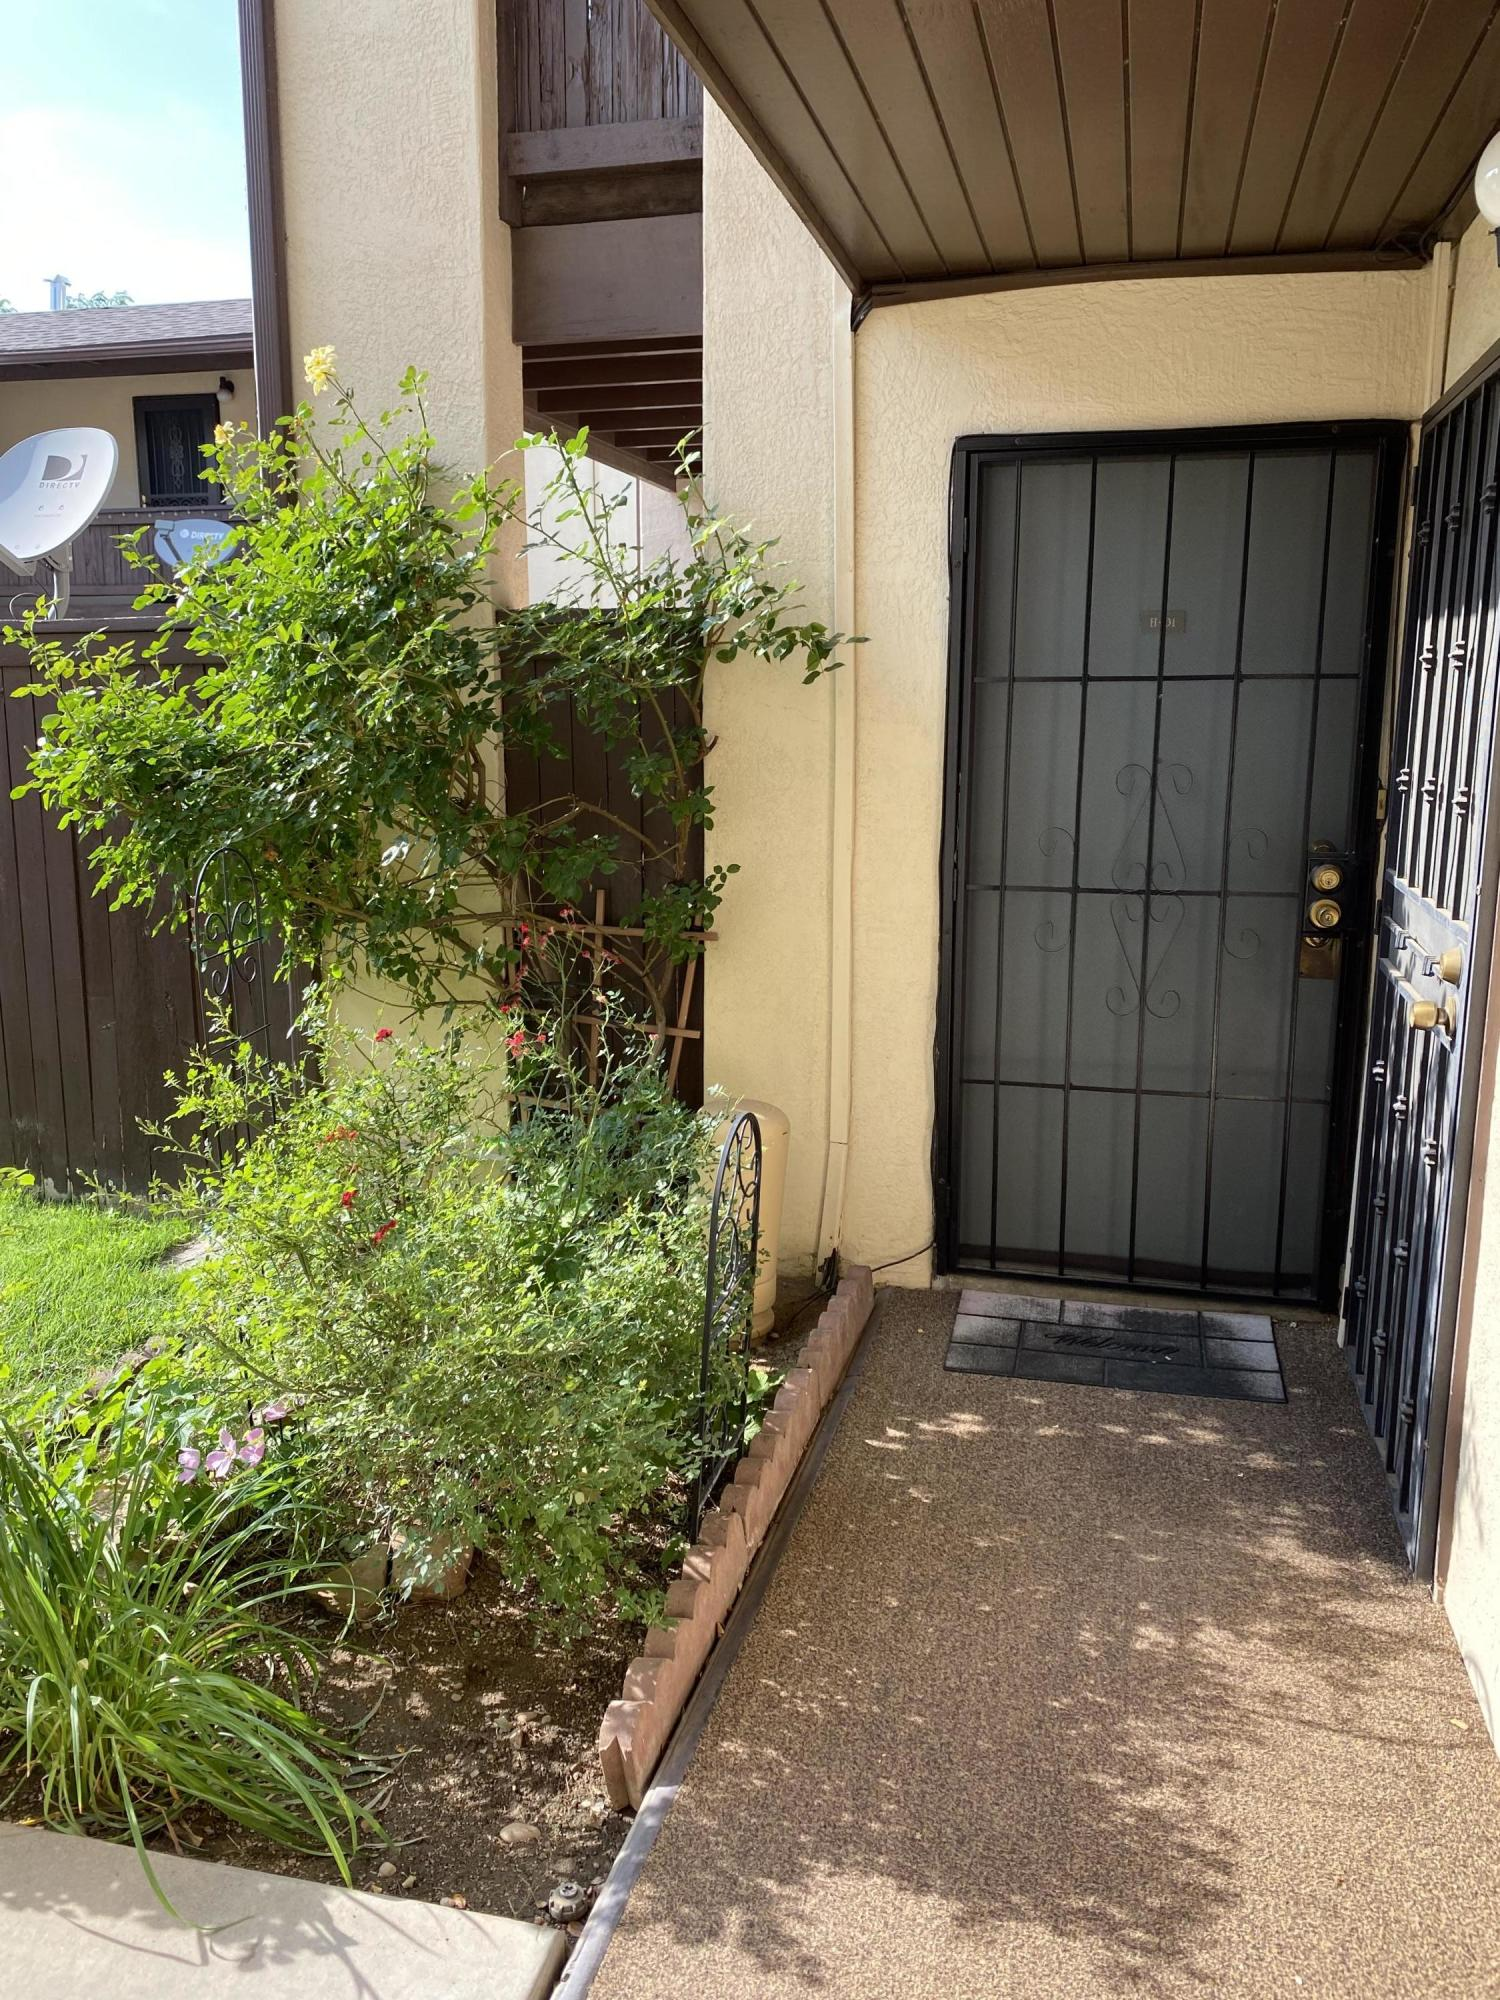 One Level Unit, Close to Pool , Sharp, Light and Bright Good Condition. One Bedroom, One Bath, ElectricStove, Covered Patio, Refrigerated Air, Very nice Patio.Seller prefer Cash only buyers for Quick Close.EM to be $5000.00 (Non Refundable)